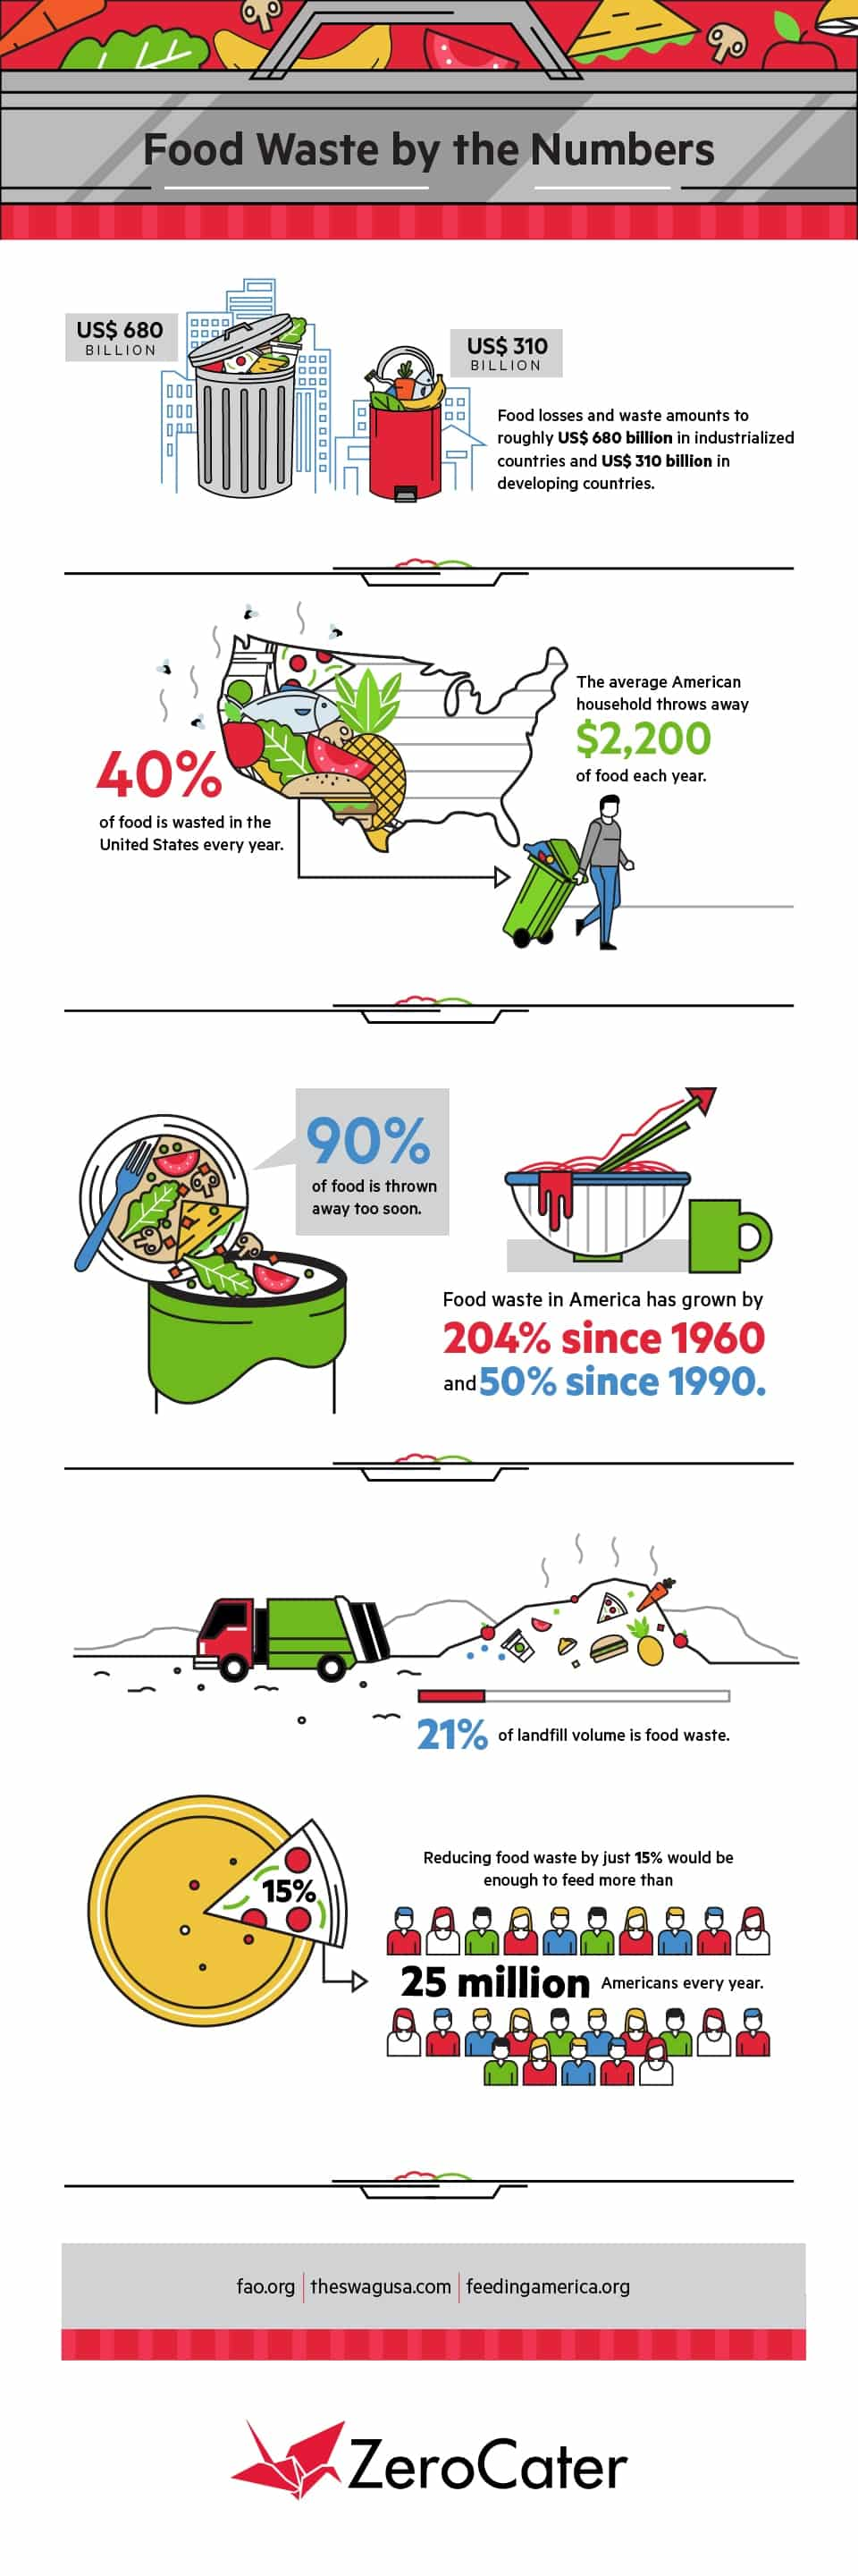 Food Wastage: Numbers Speak - Infographic